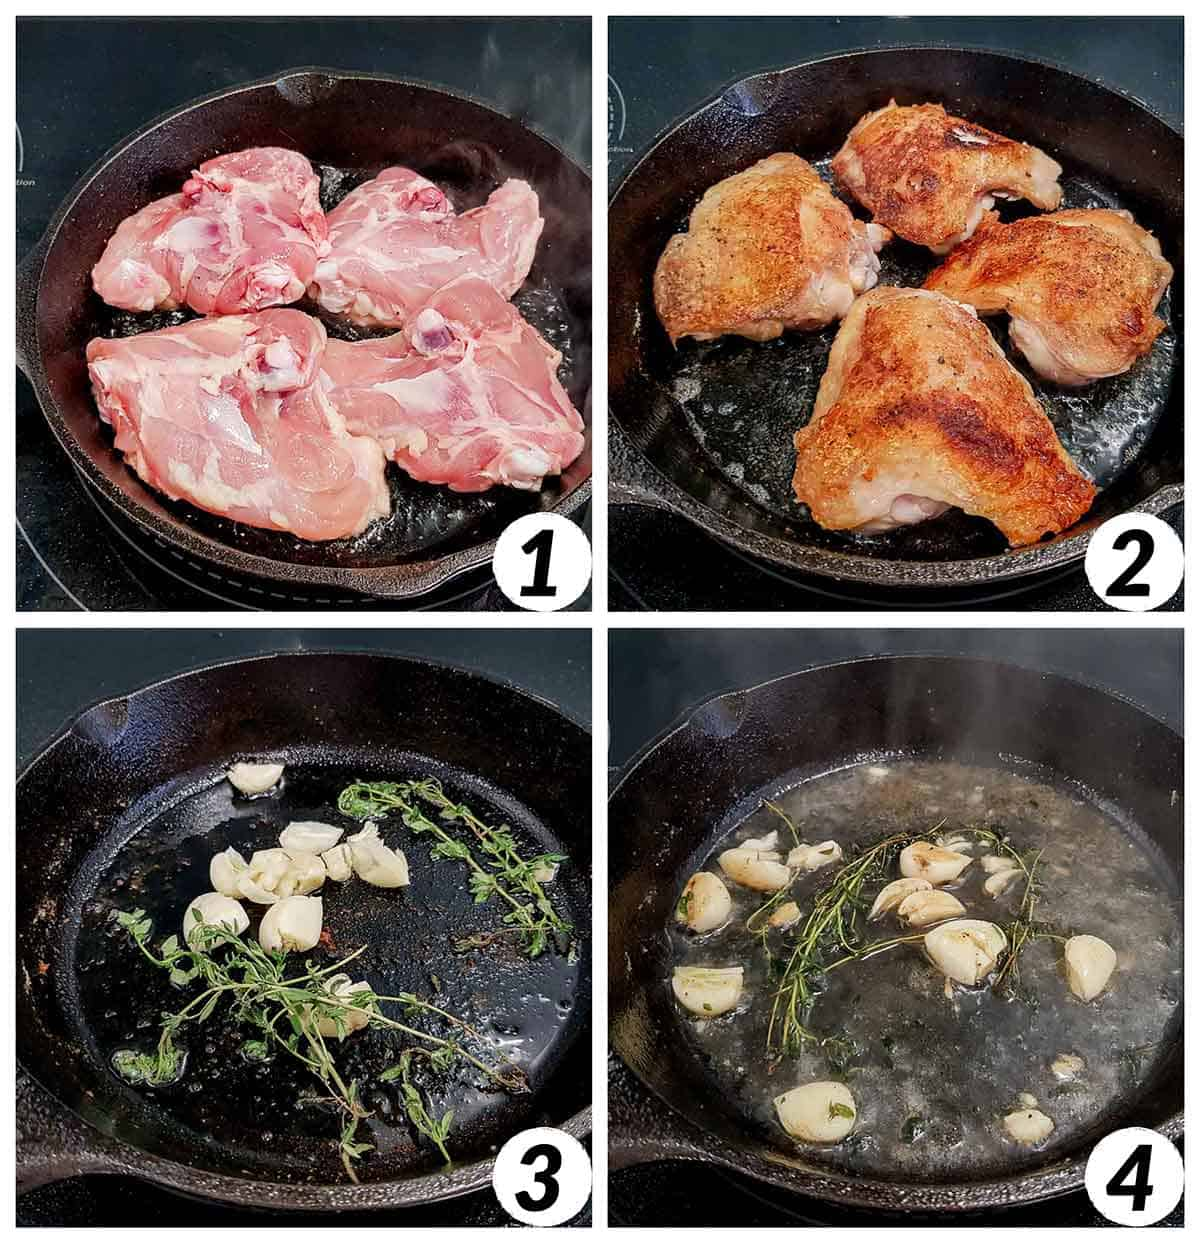 Four panel collage of process shots- cooking chicken thighs in skillet and adding additional ingredients.